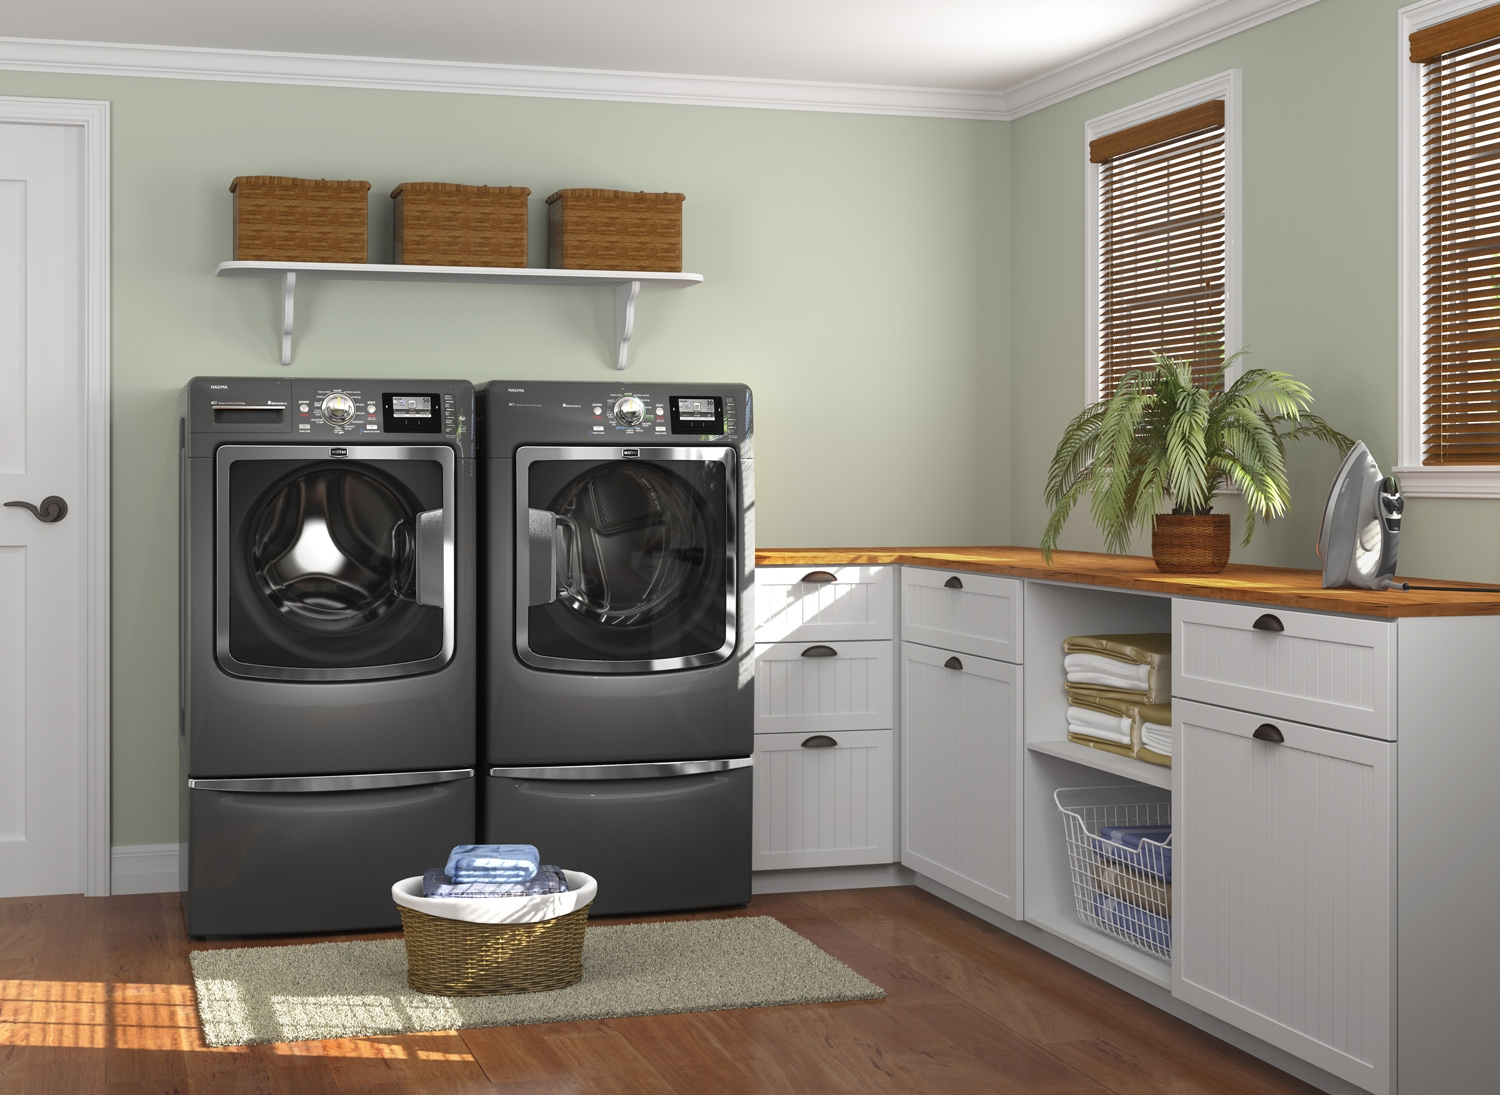 Pictures Of Laundry Rooms 15 Tips To Creating A Laundry Room That's Both Charming